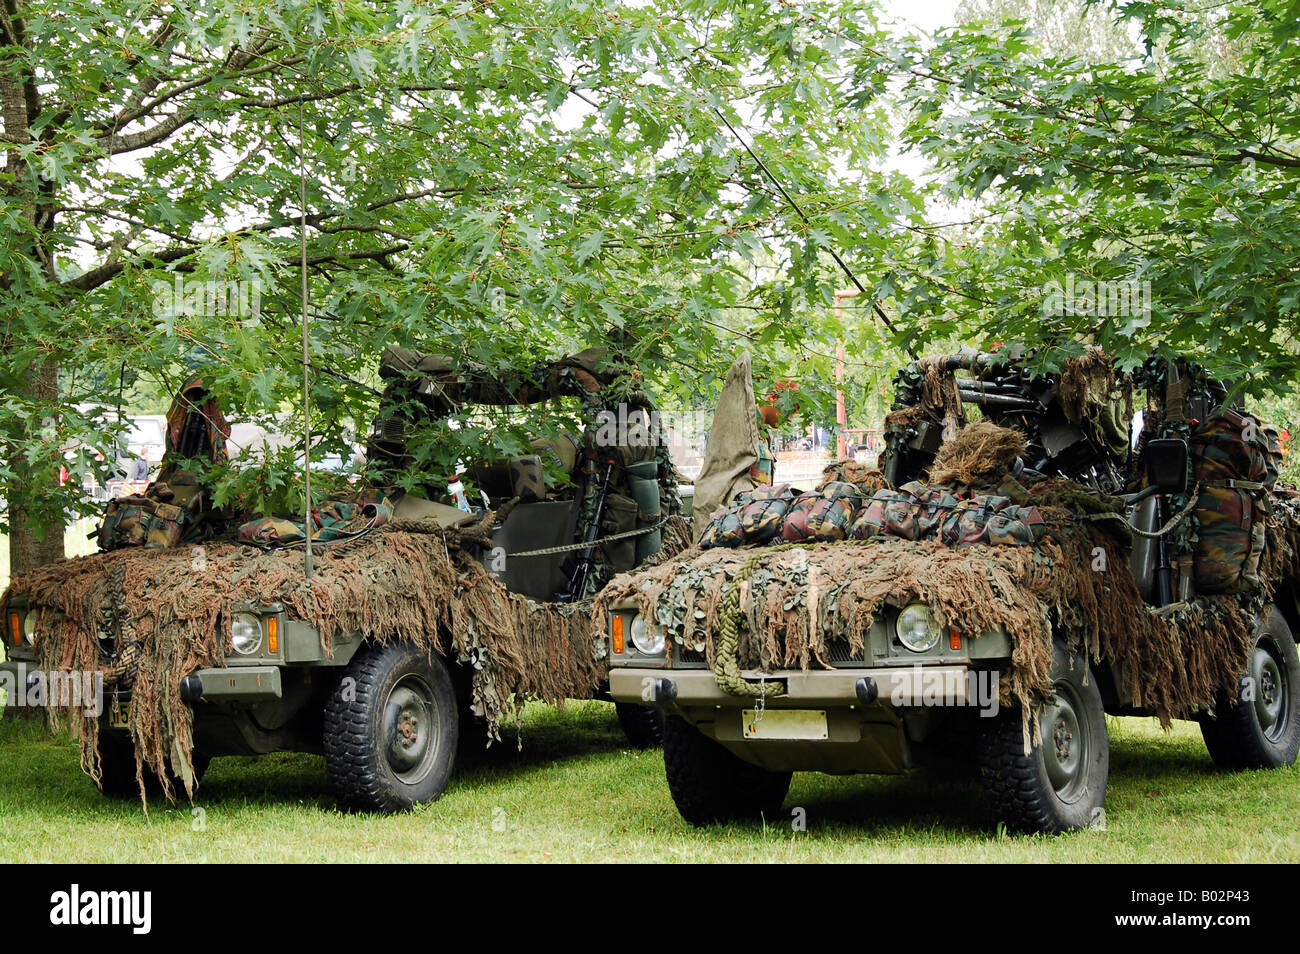 VW Iltis Jeeps used by scout or recce teams from the Belgian Army. - Stock Image